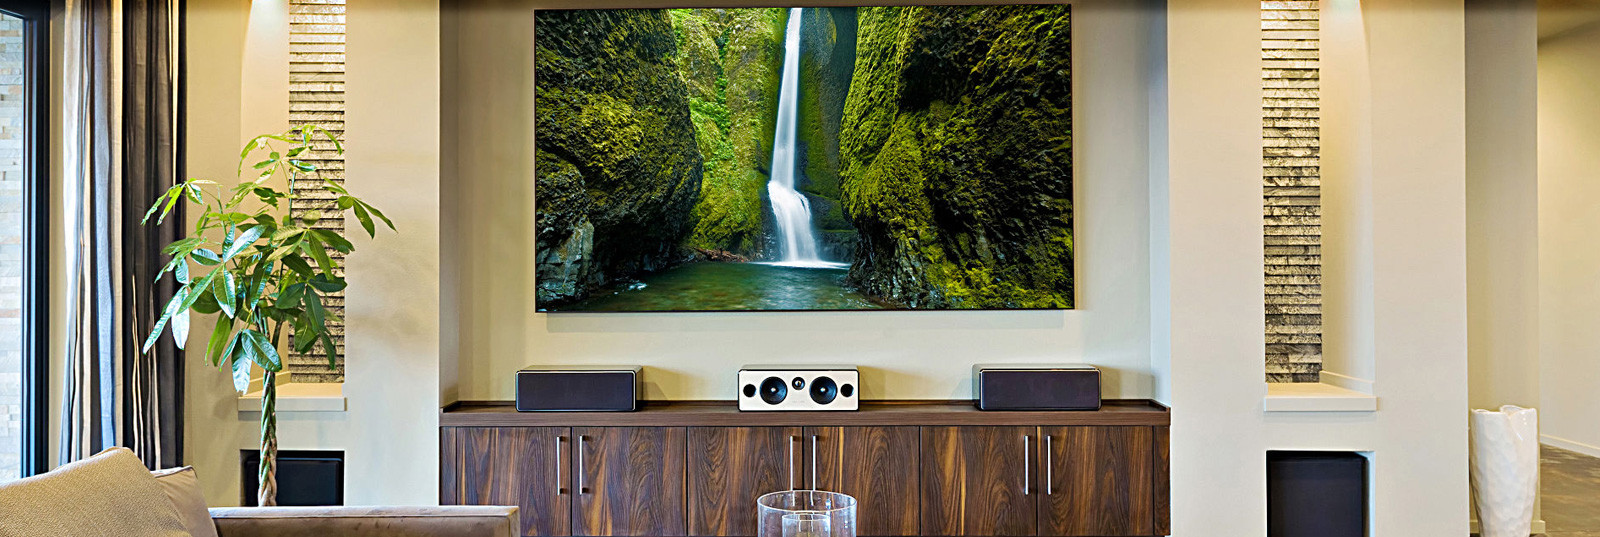 How to Find High End Audio & Video Equipment Installation and Repair Services in Renton